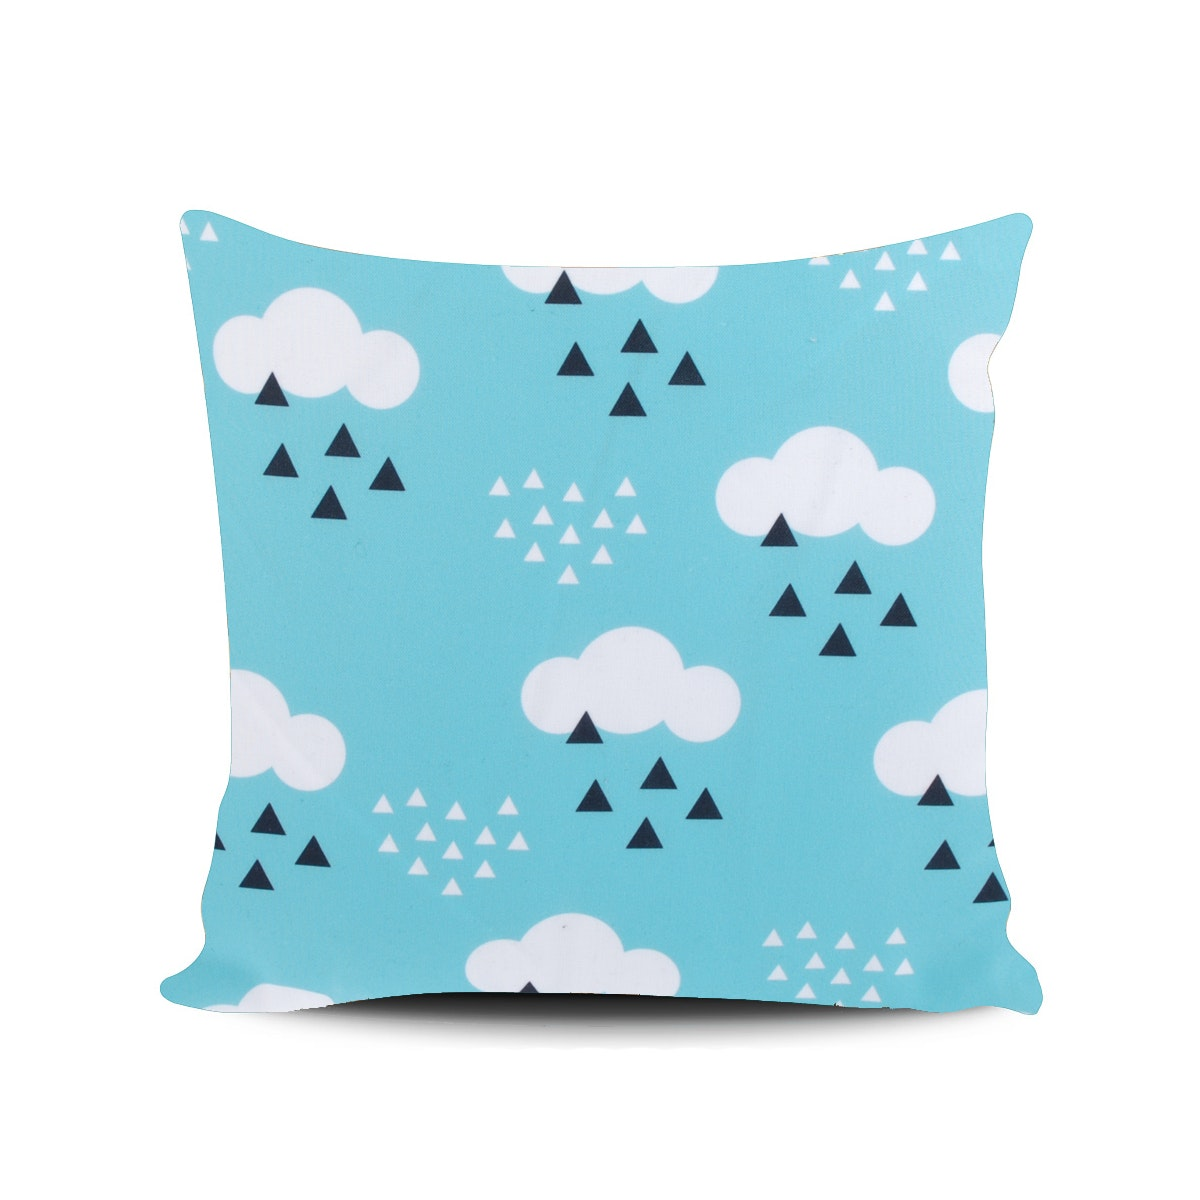 Myka_kids Tosca Clouds Cushion 40x40